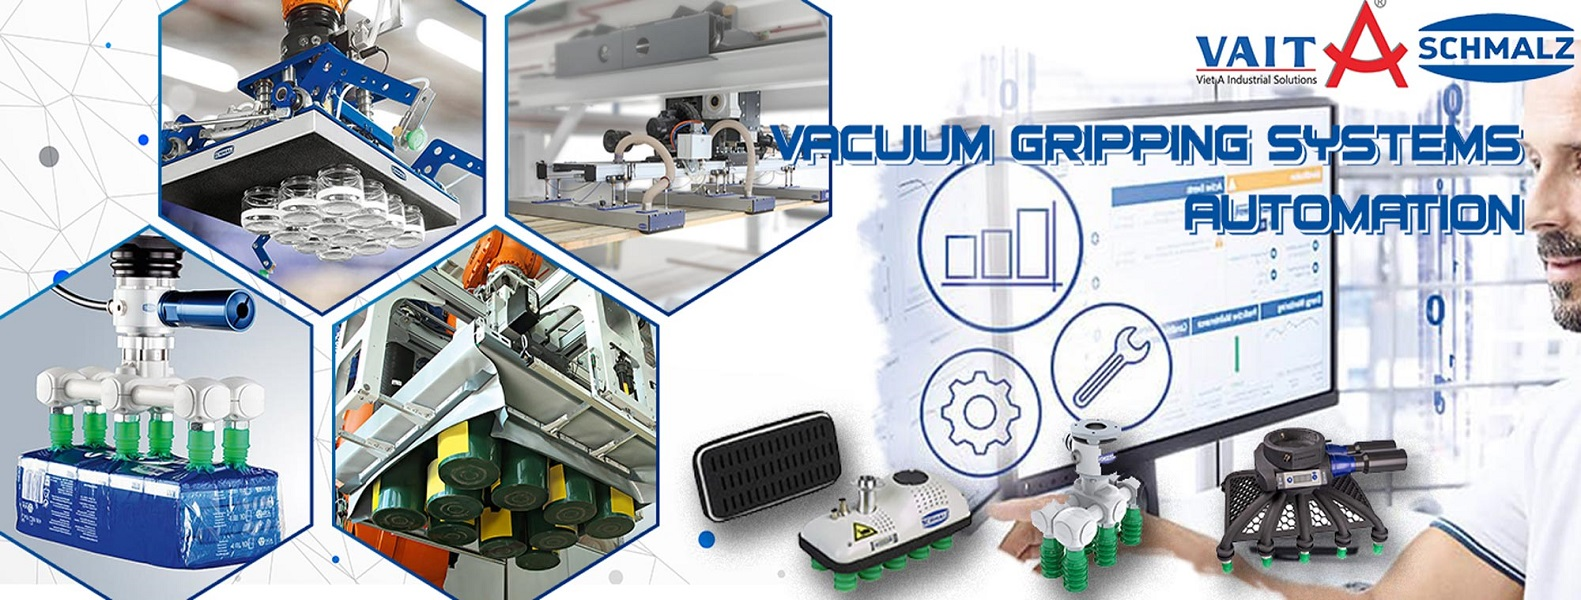 Vacuum-Gripping-Systems